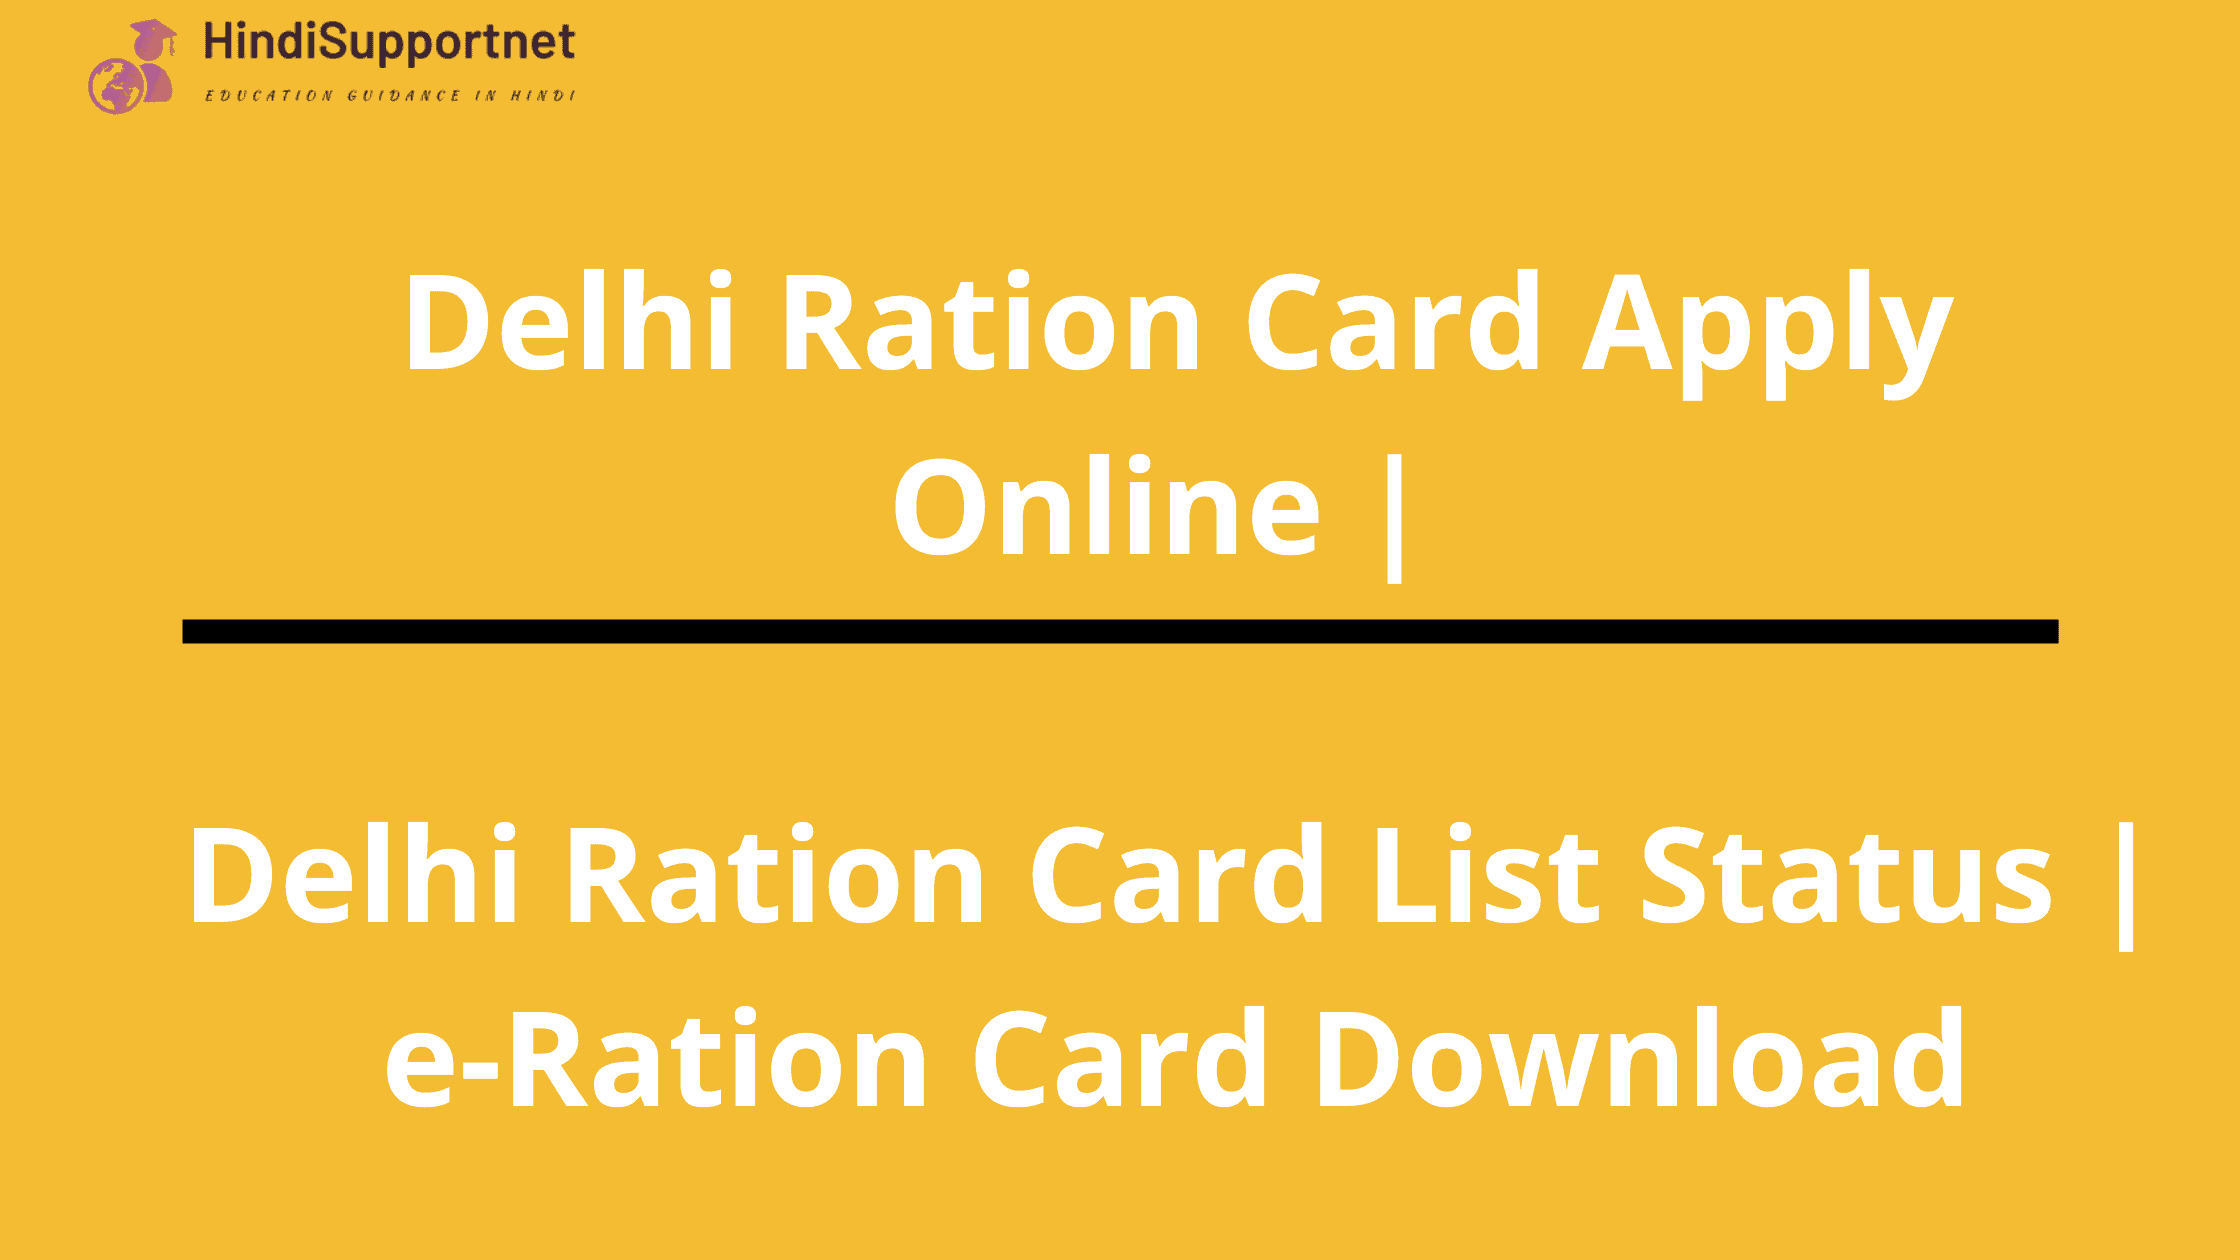 Delhi Ration Card Apply Online 2020 Now